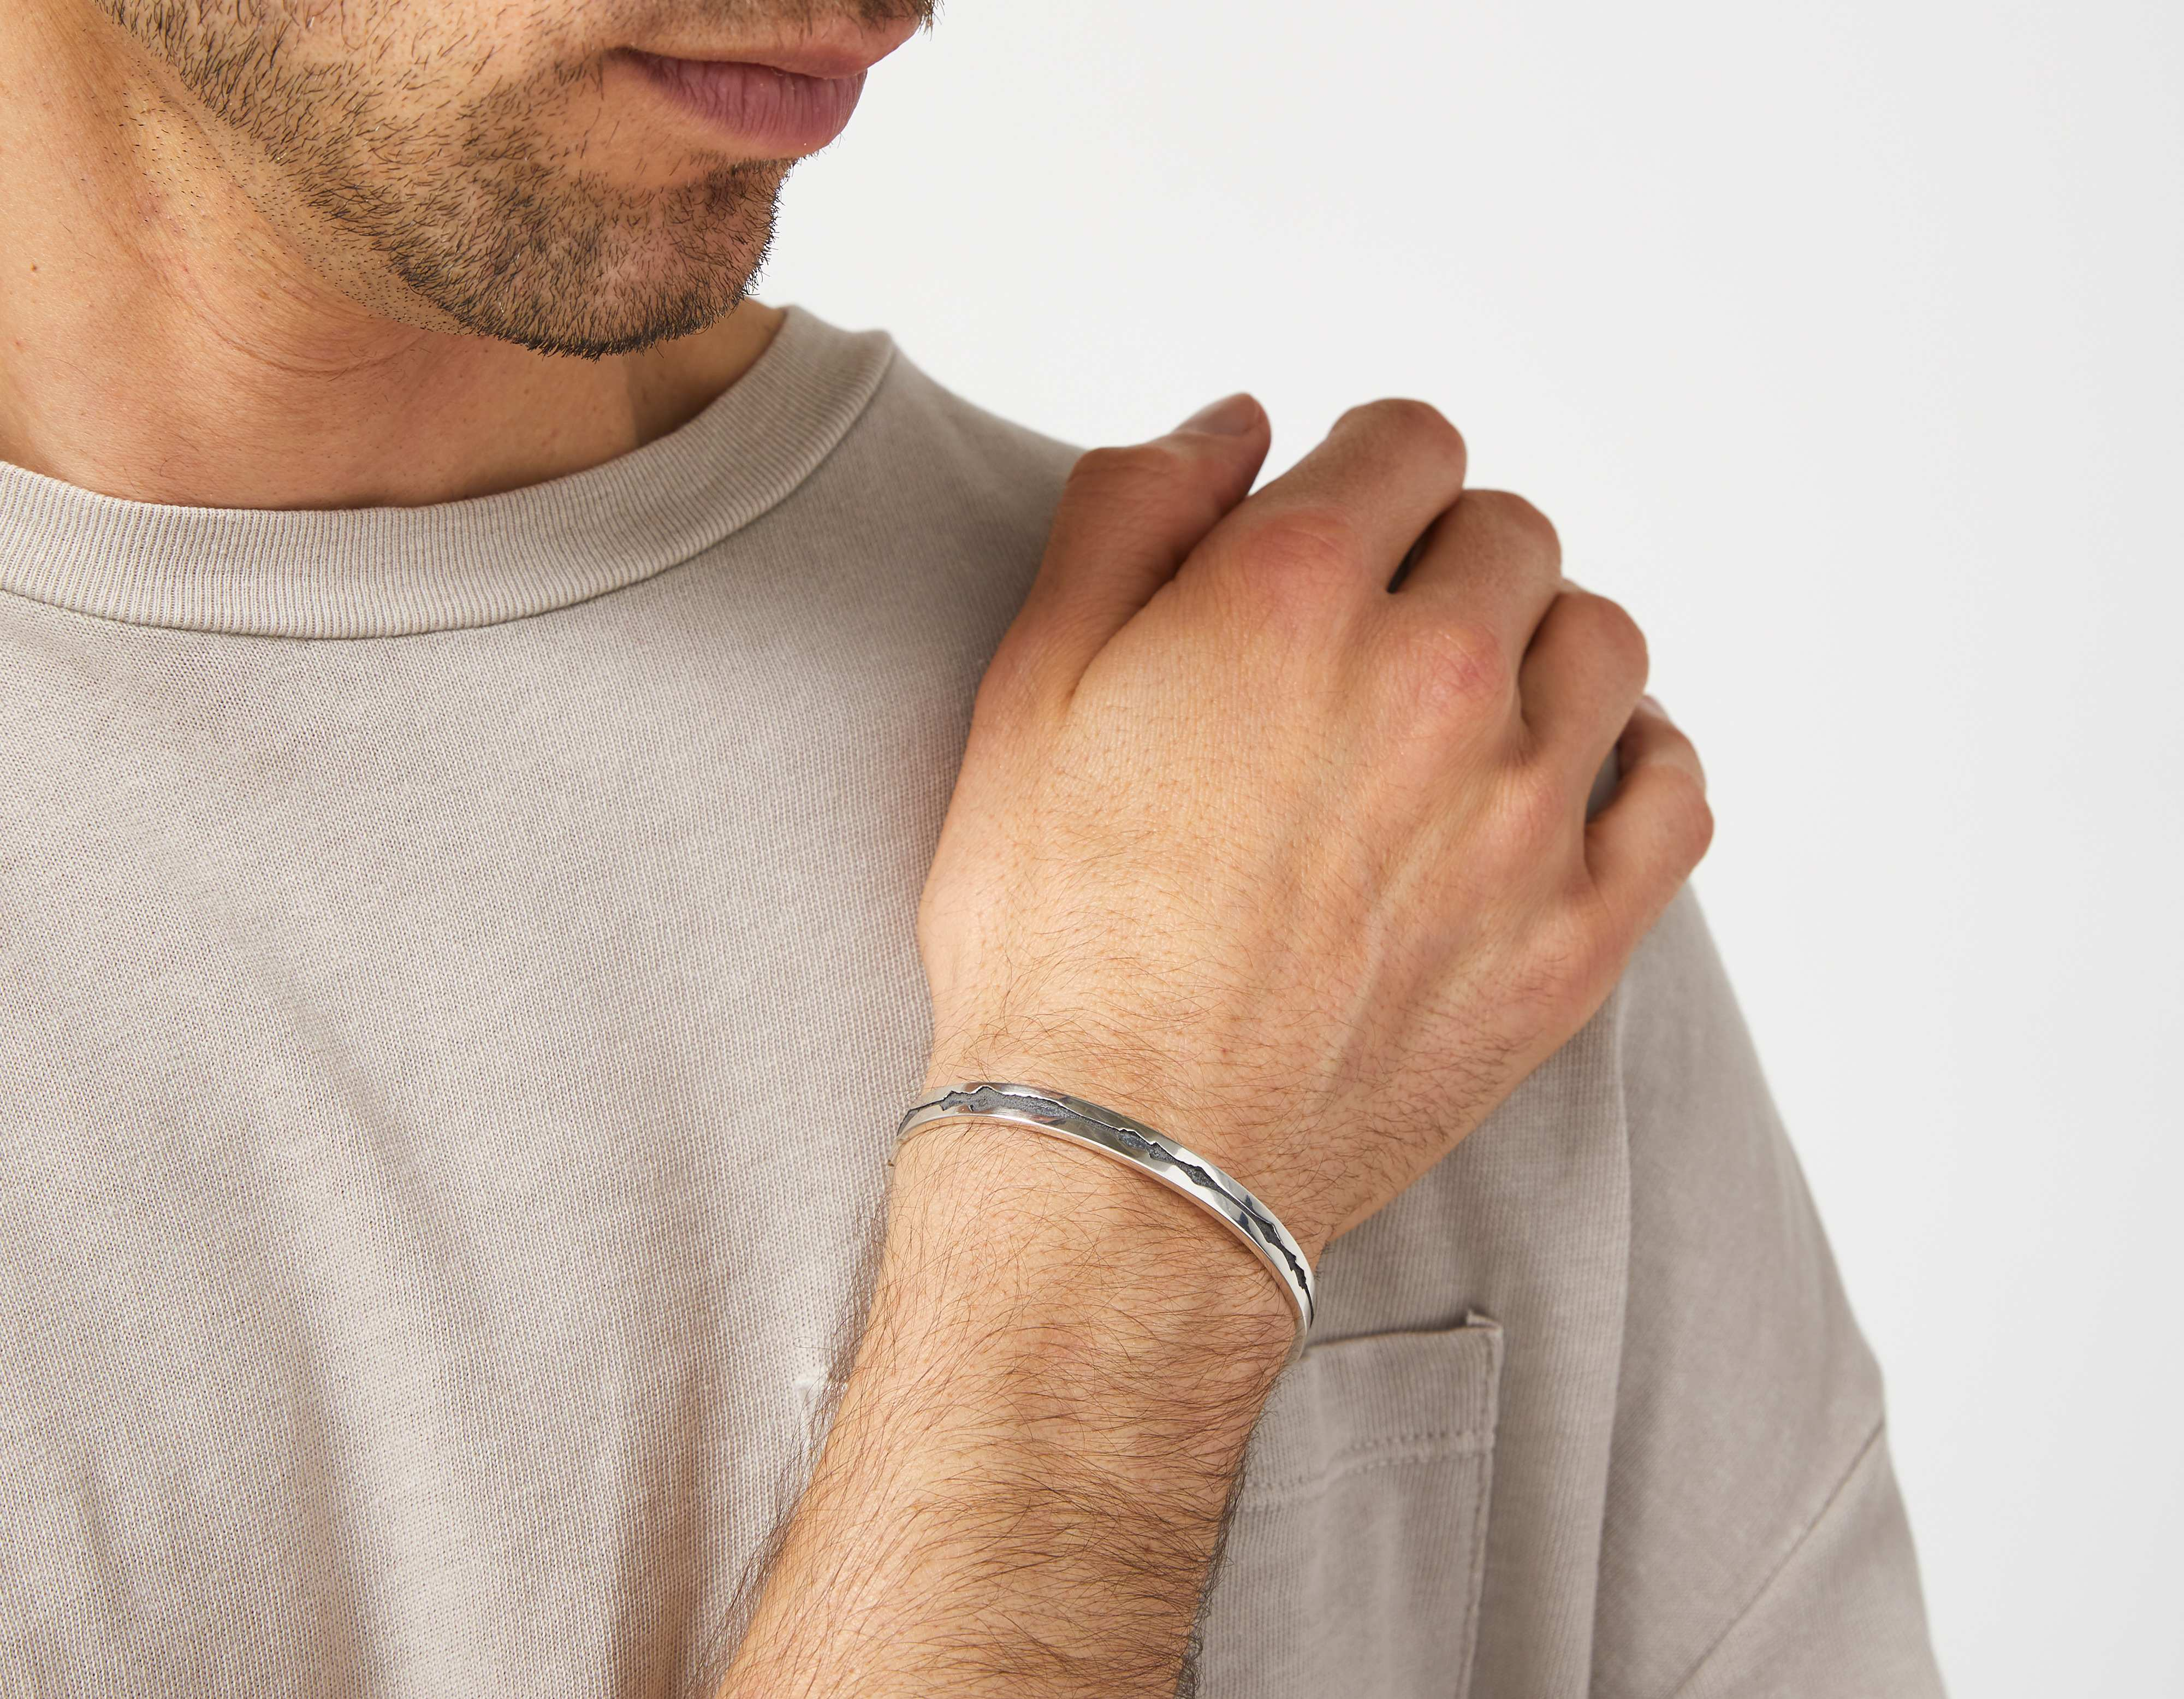 The Outer Wave Bracelet in Antiqued Sterling Silver on a male